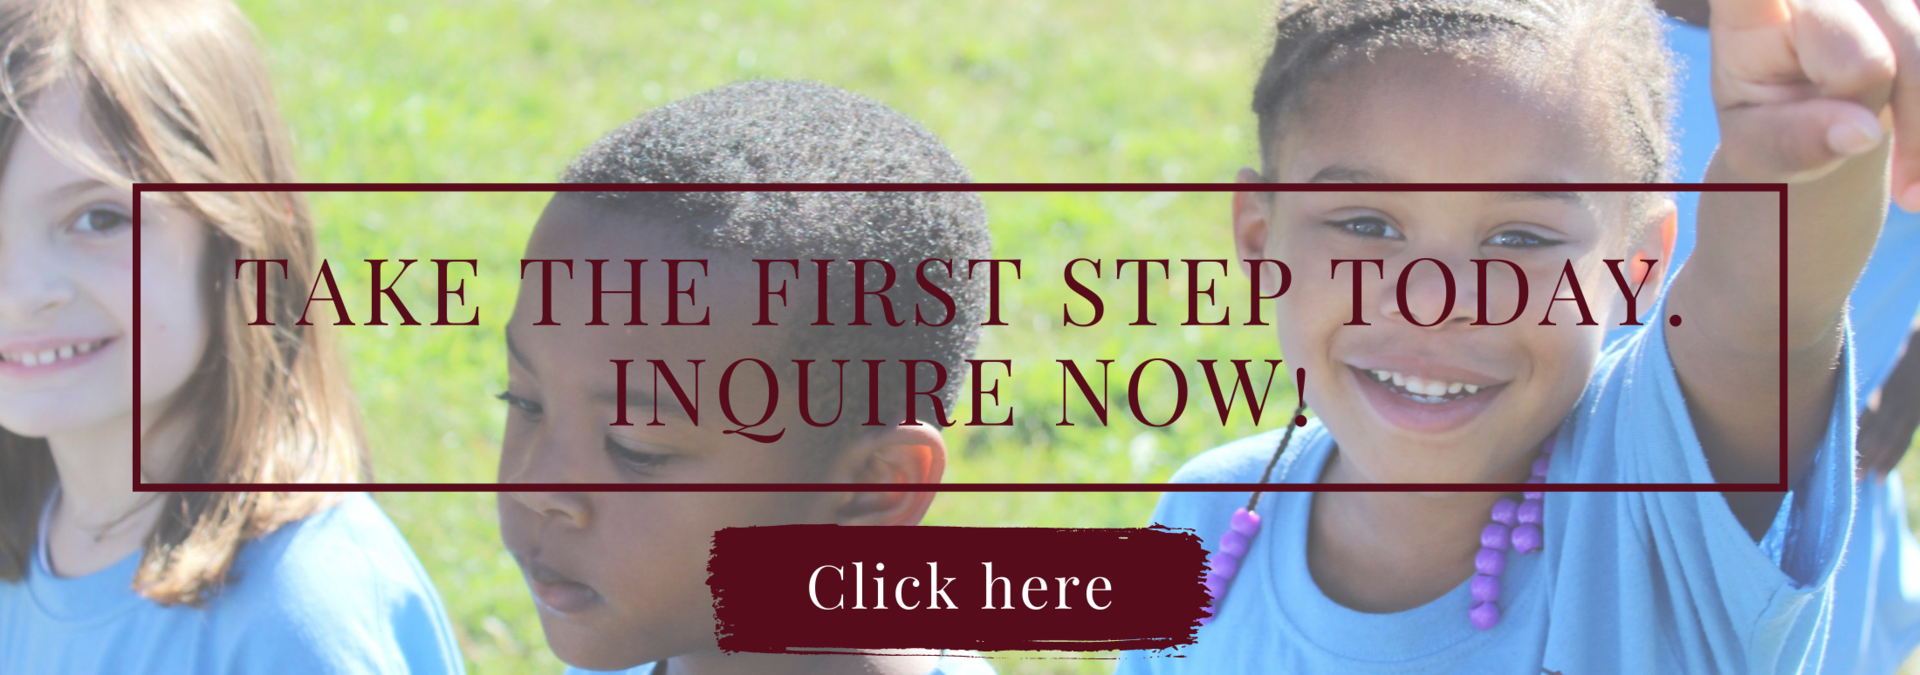 Take the first step today. Inquire now!